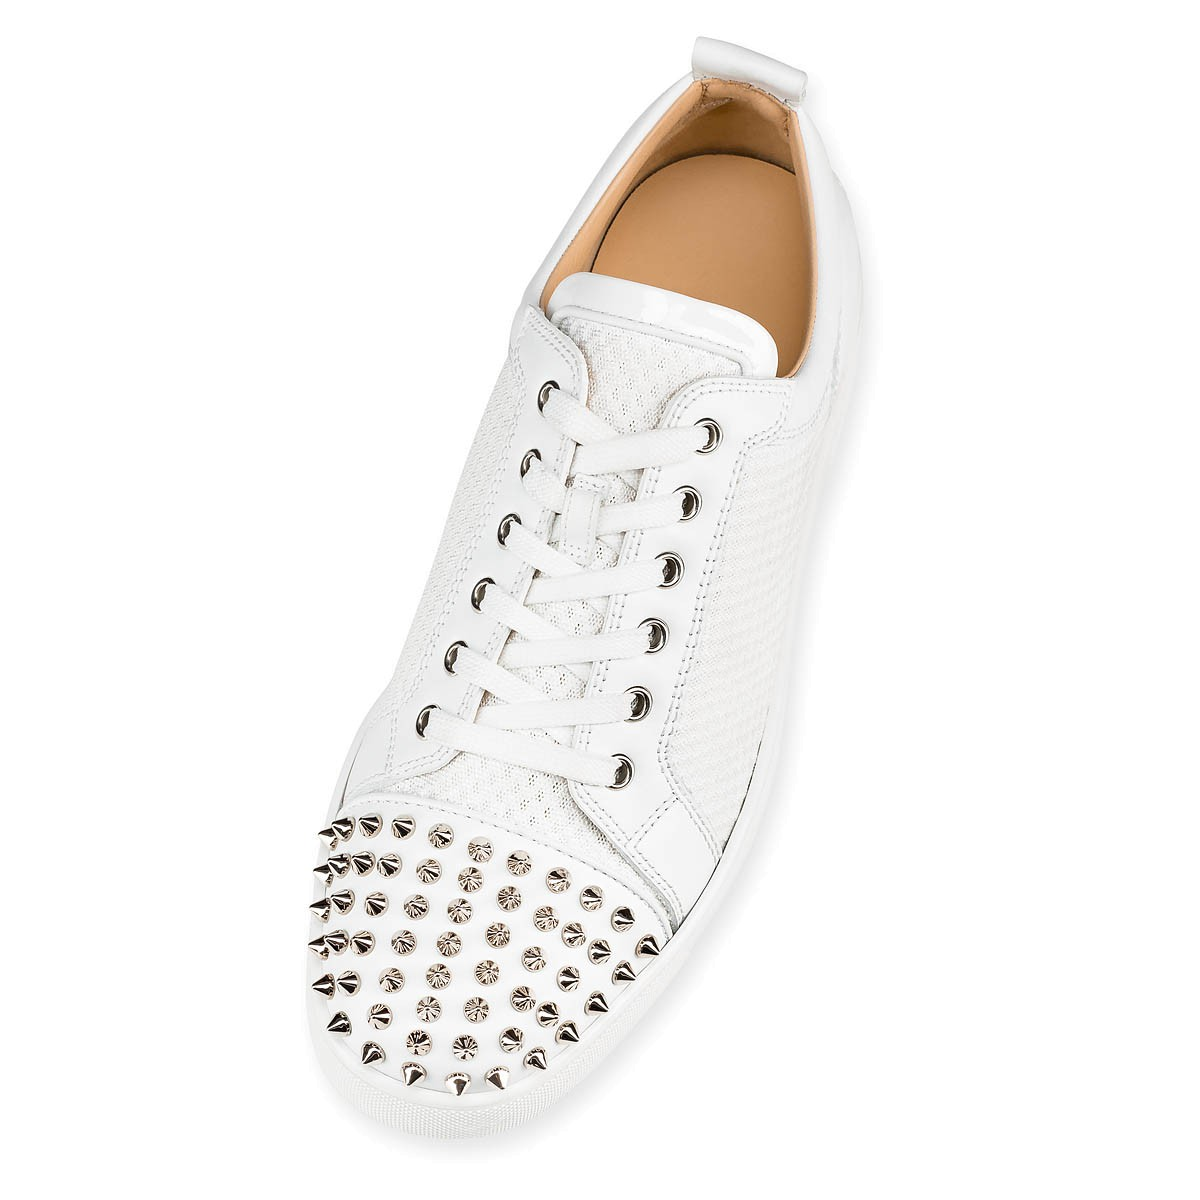 Shoes - Ac Louis Junior Spikes - Christian Louboutin